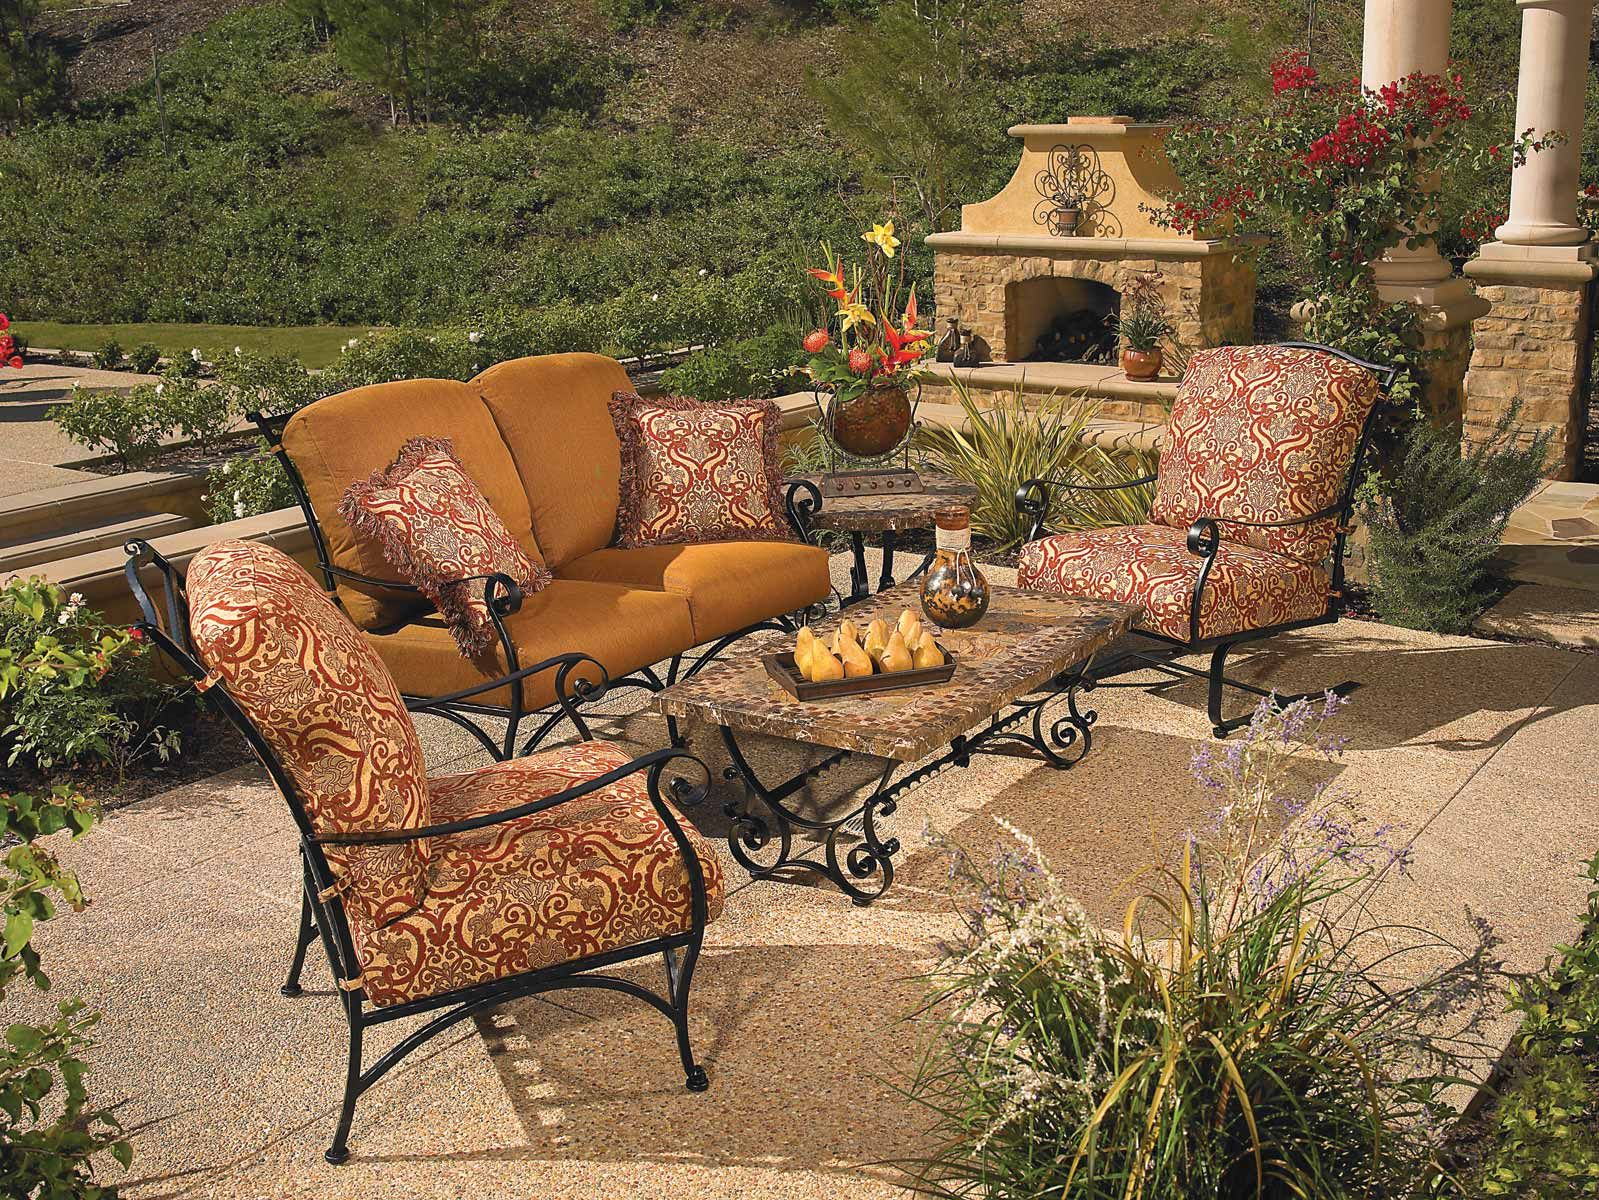 Linly Designs Alfresco Dining And Patio In 2019 Iron pertaining to measurements 1599 X 1200